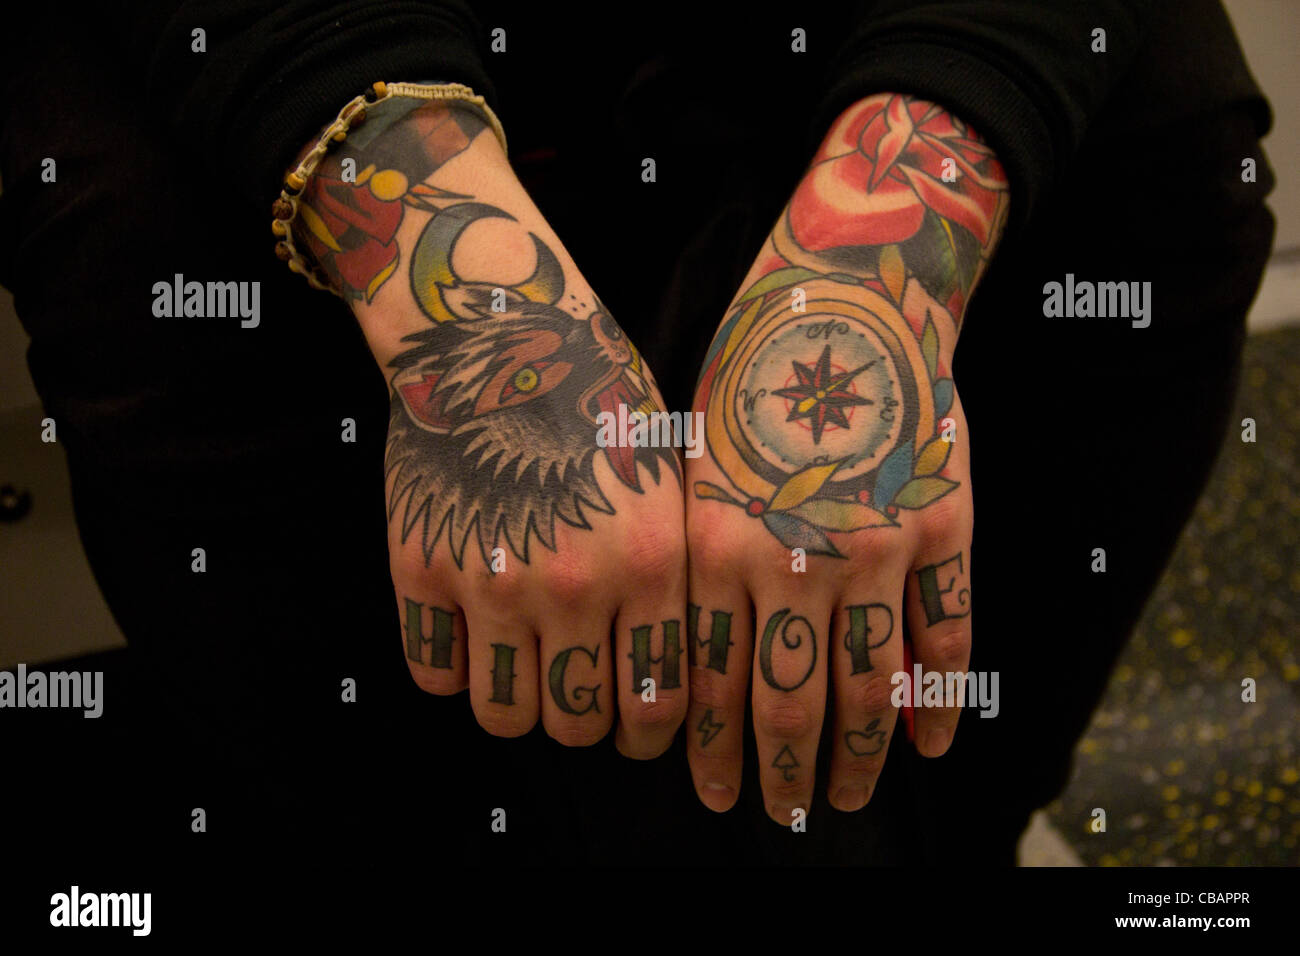 541cb62c8 Fully covered hand tattoos. Artistic and beautiful, bright colours. Wolf,  compass, rose and moon imagery. Lettering